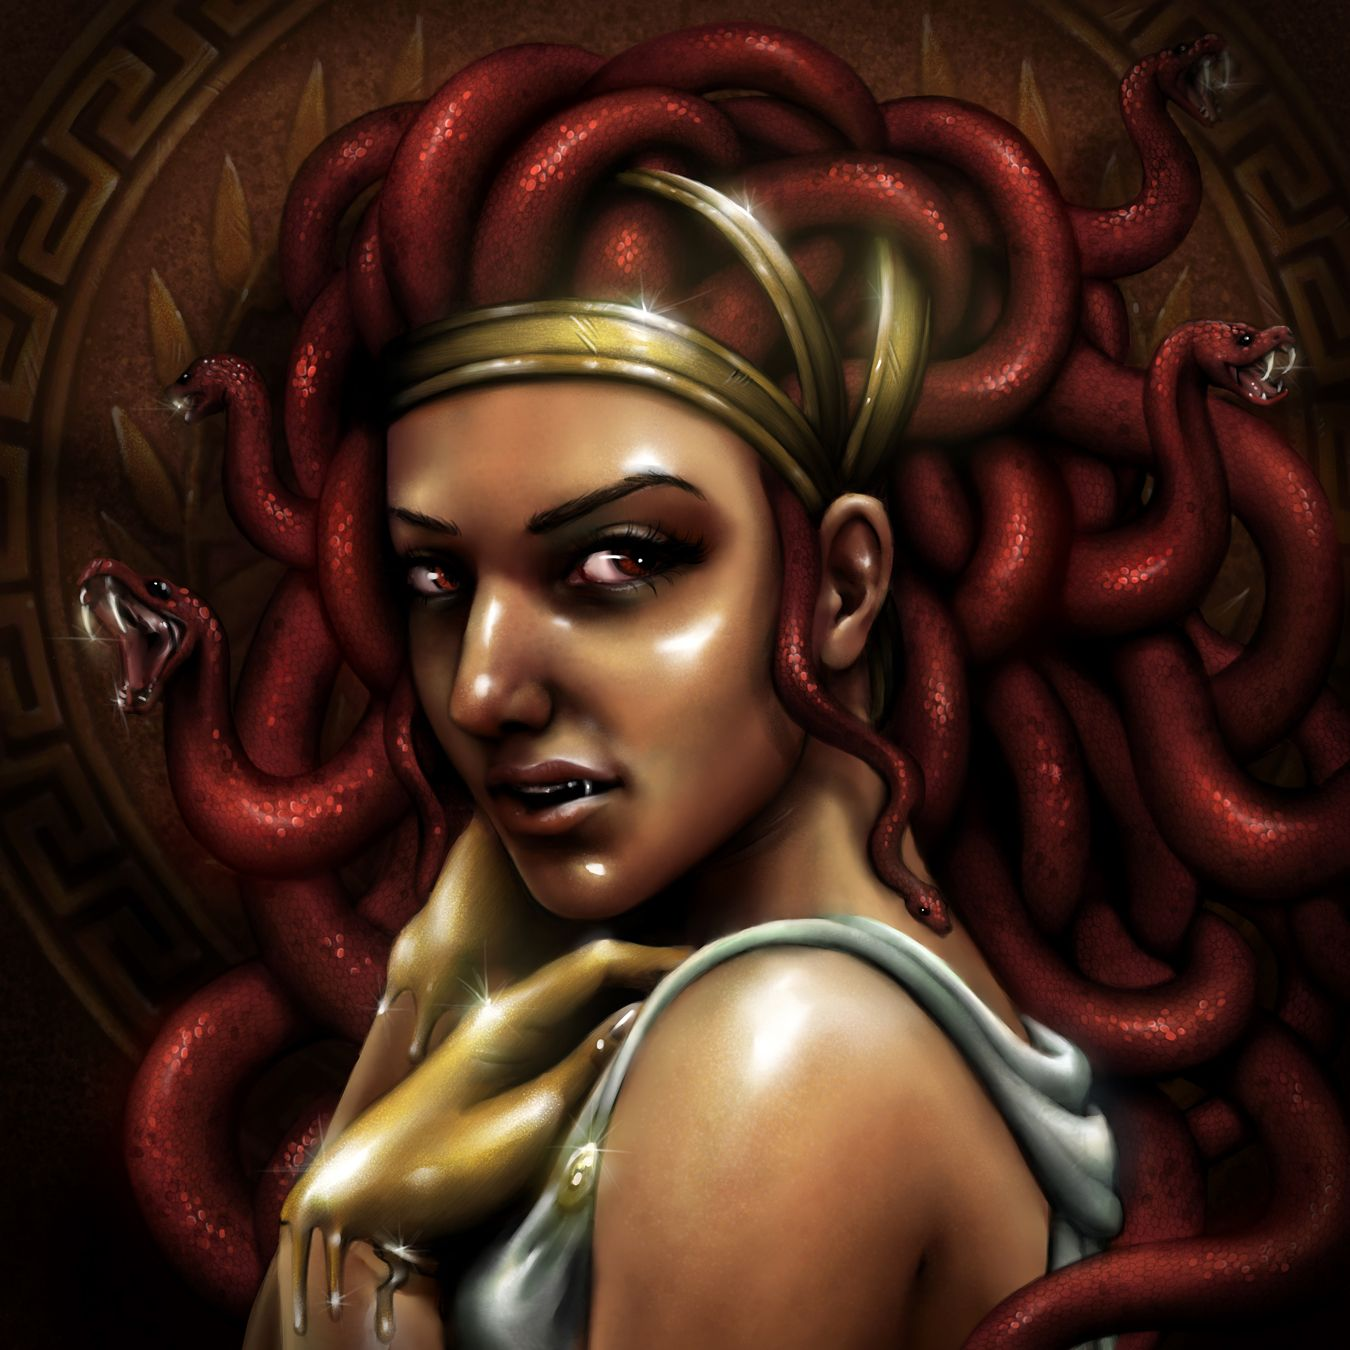 The Gorgon Stheno | Medusa | Pinterest | Medusa and Mythology